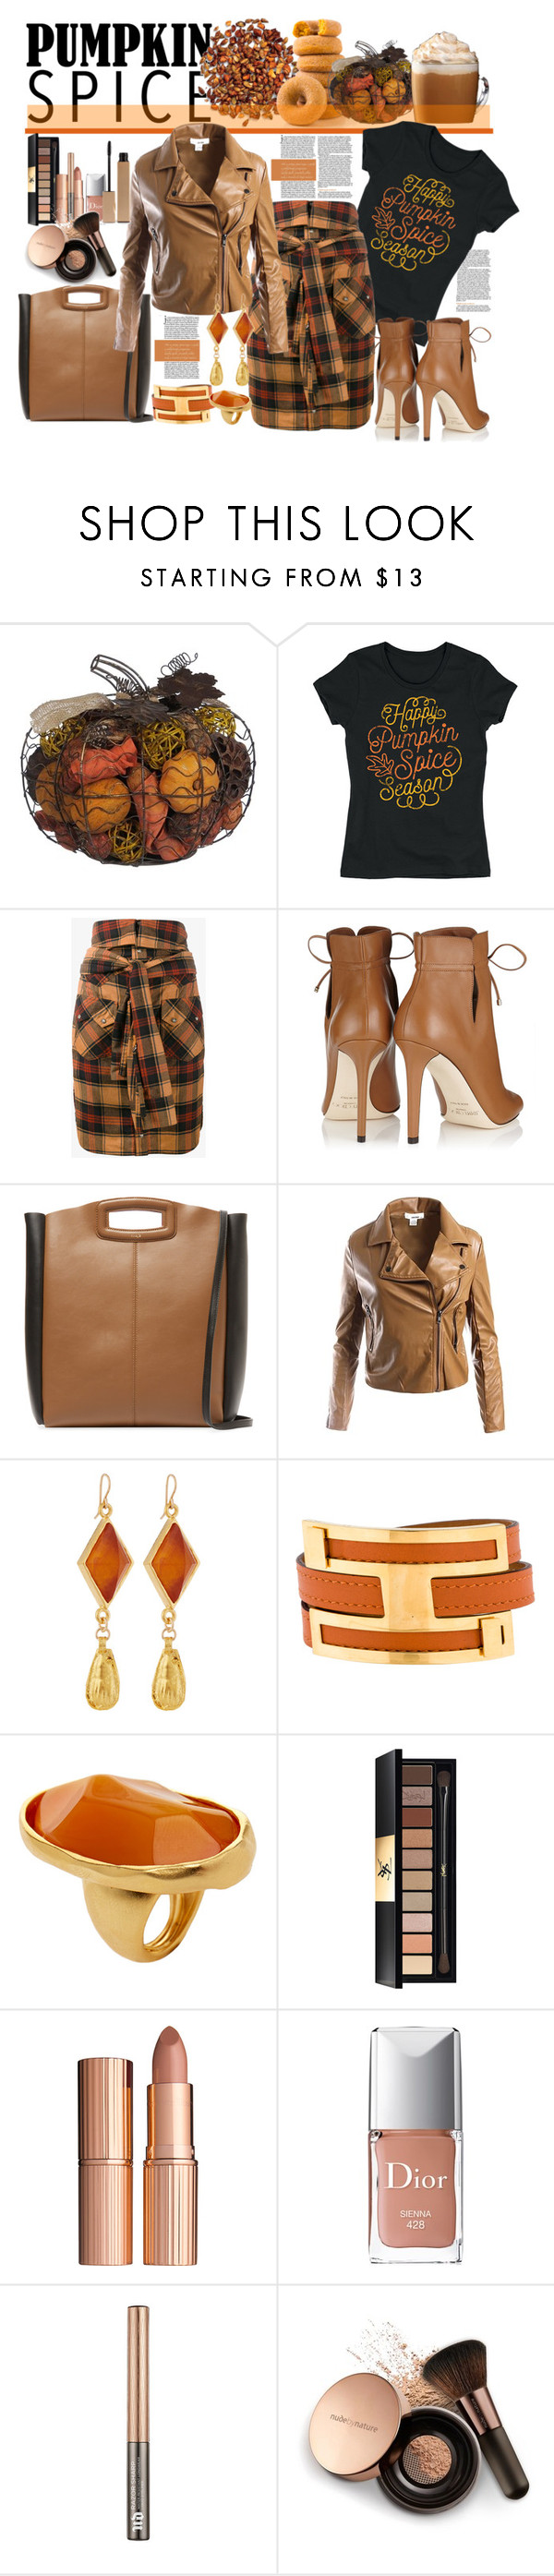 """Pumpkin Spice"" by marionmeyer ❤ liked on Polyvore featuring LC Trendz, Faith Connexion, Jimmy Choo, Maje, Sans Souci, Devon Leigh, Hermès, Kenneth Jay Lane, Yves Saint Laurent and Charlotte Tilbury"